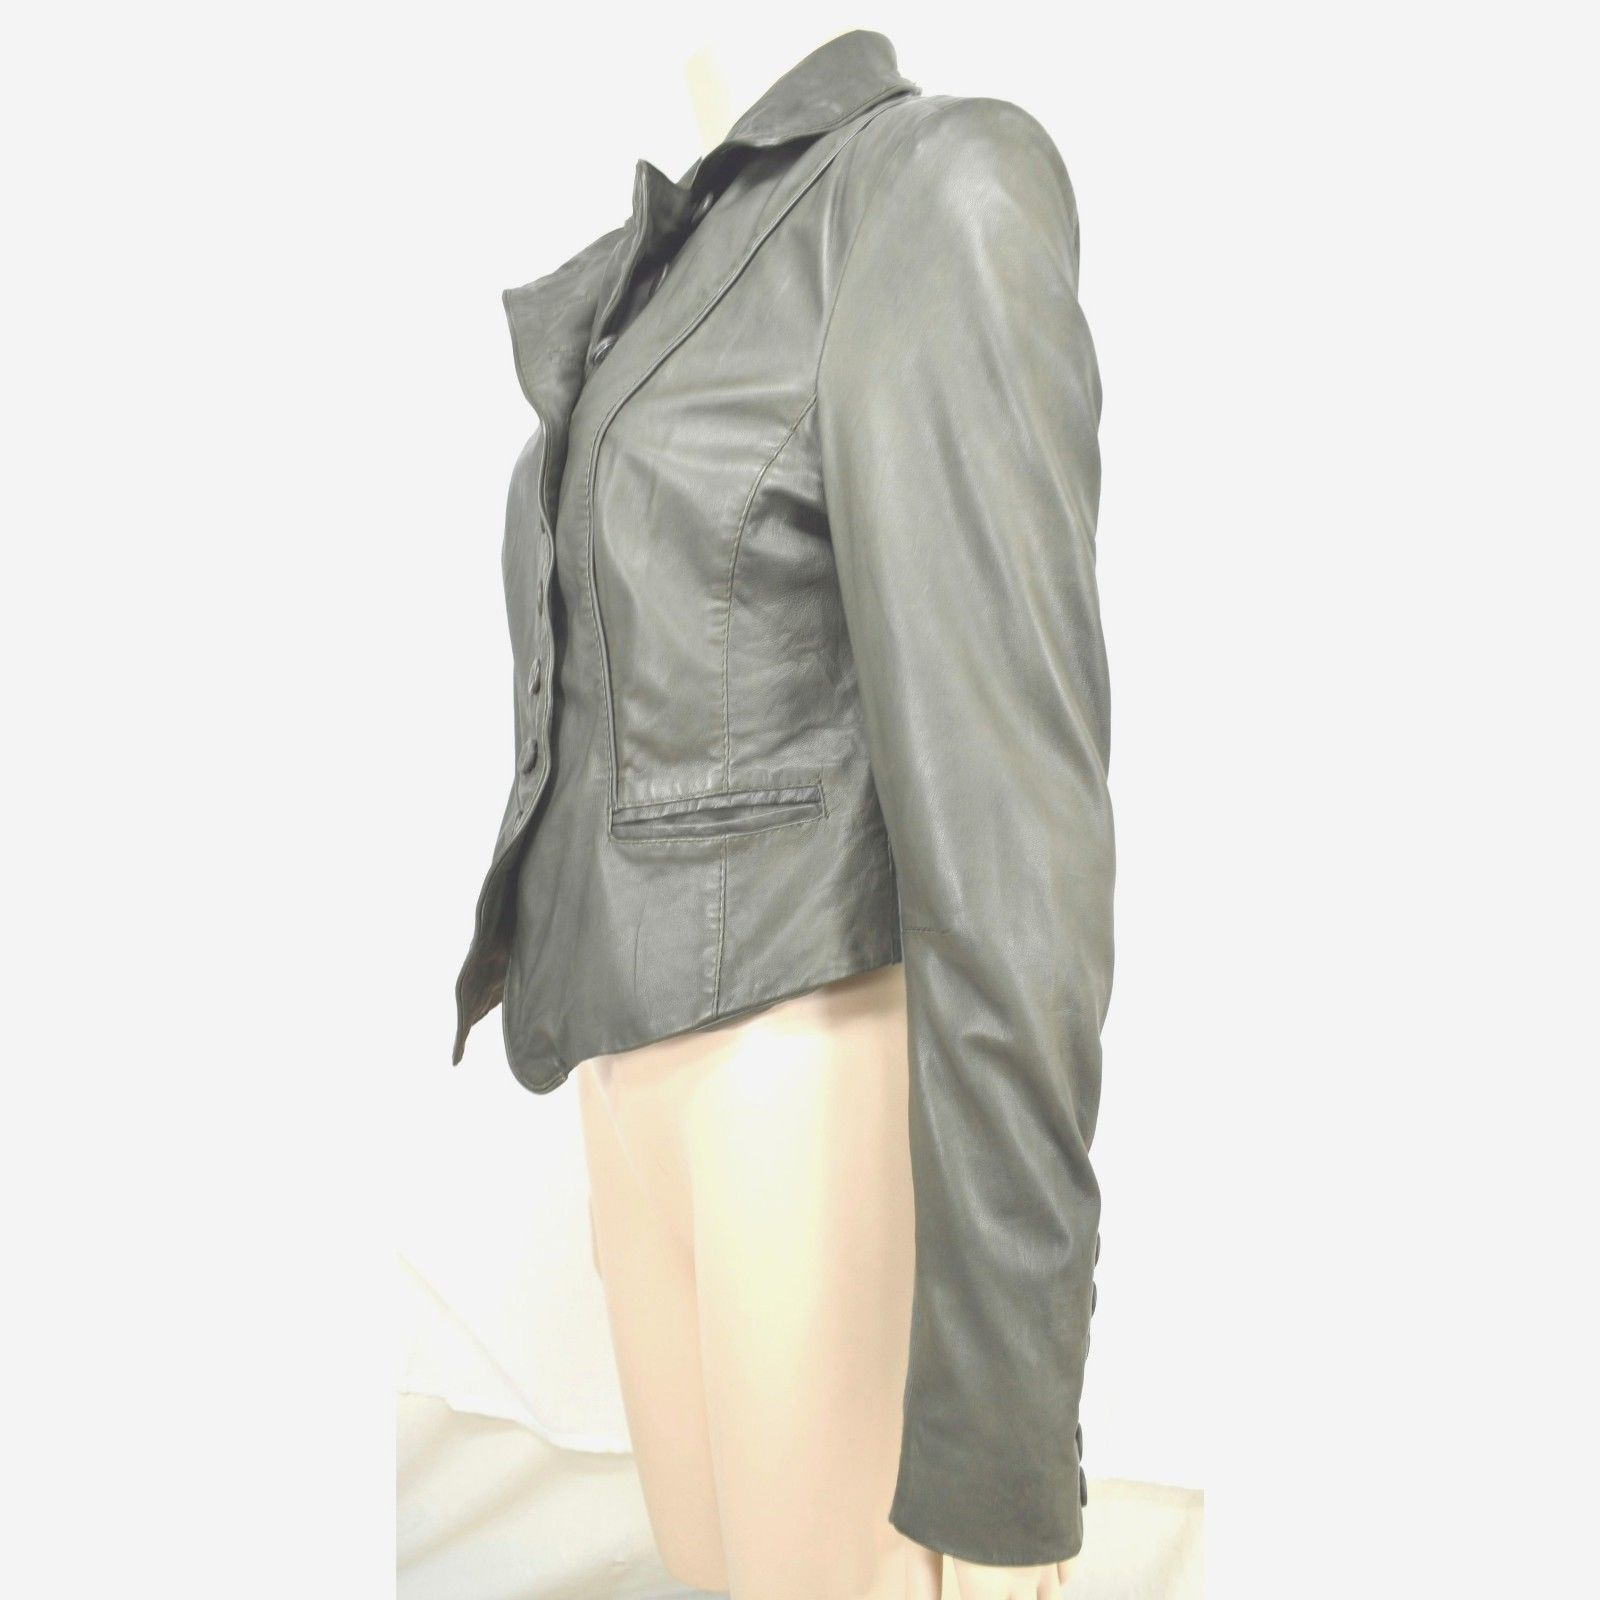 MUUBAA lambskin soft leather jacket SZ 8 Moss Army Gray asymmetric buttoned image 9